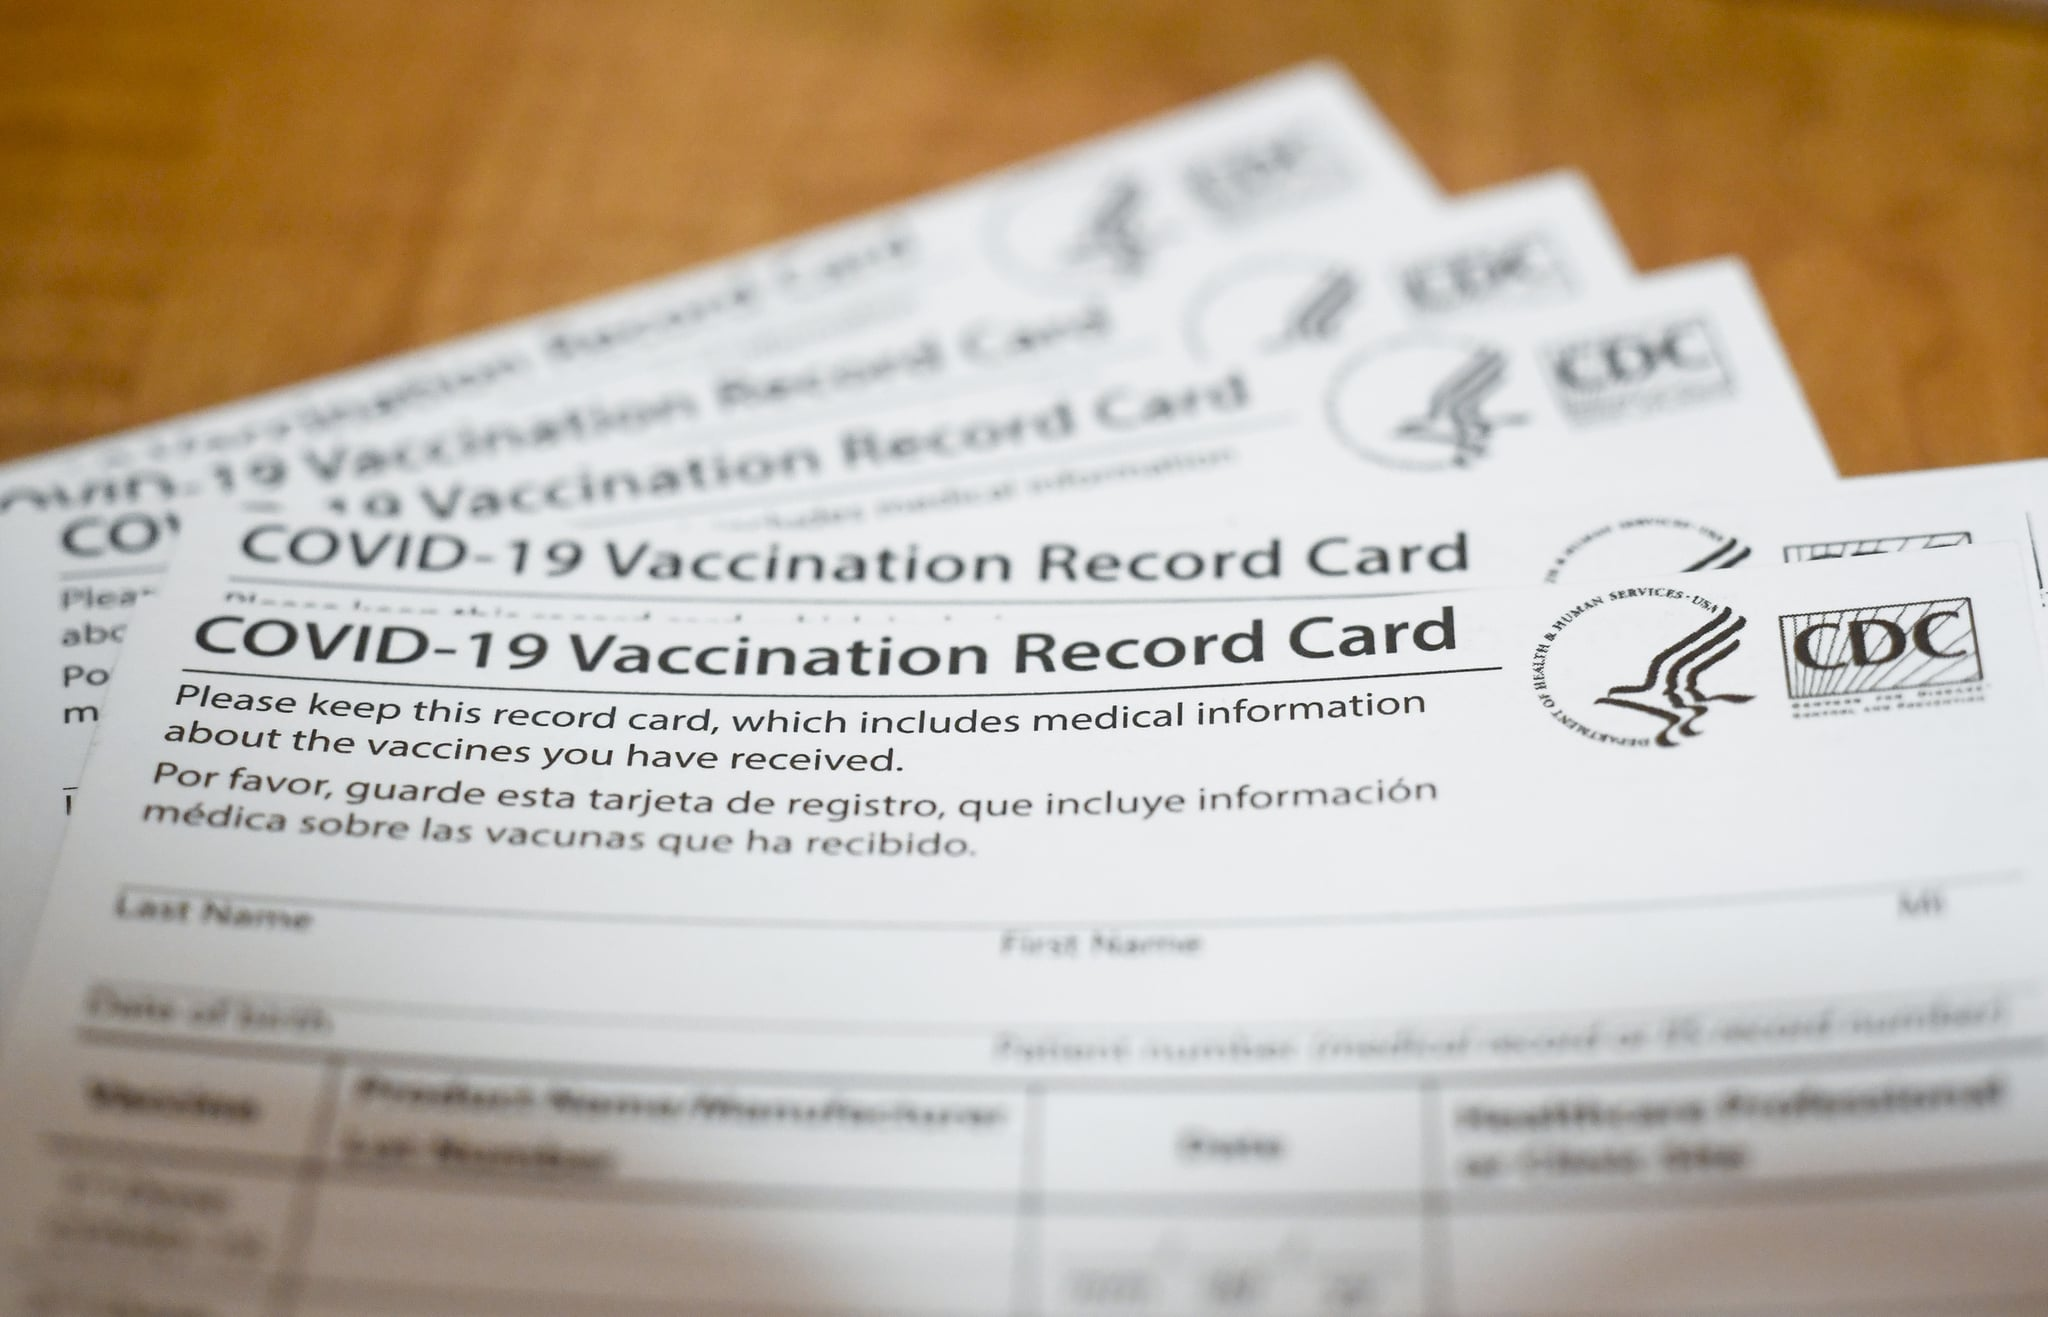 Bern Township, PA - January 29: A COVID-19 Vaccination Record Card from the CDC (Centres for Disease Control and Prevention). At the Berks Heim Nursing and Rehabilitation Centre in Bern Township Friday morning January 29, 2021 where residents of the home, and staff are being vaccinated against COVID-19 / Coronavirus with the Pfizer-BioNTech vaccine. (Photo by Ben Hasty/MediaNews Group/Reading Eagle via Getty Images)